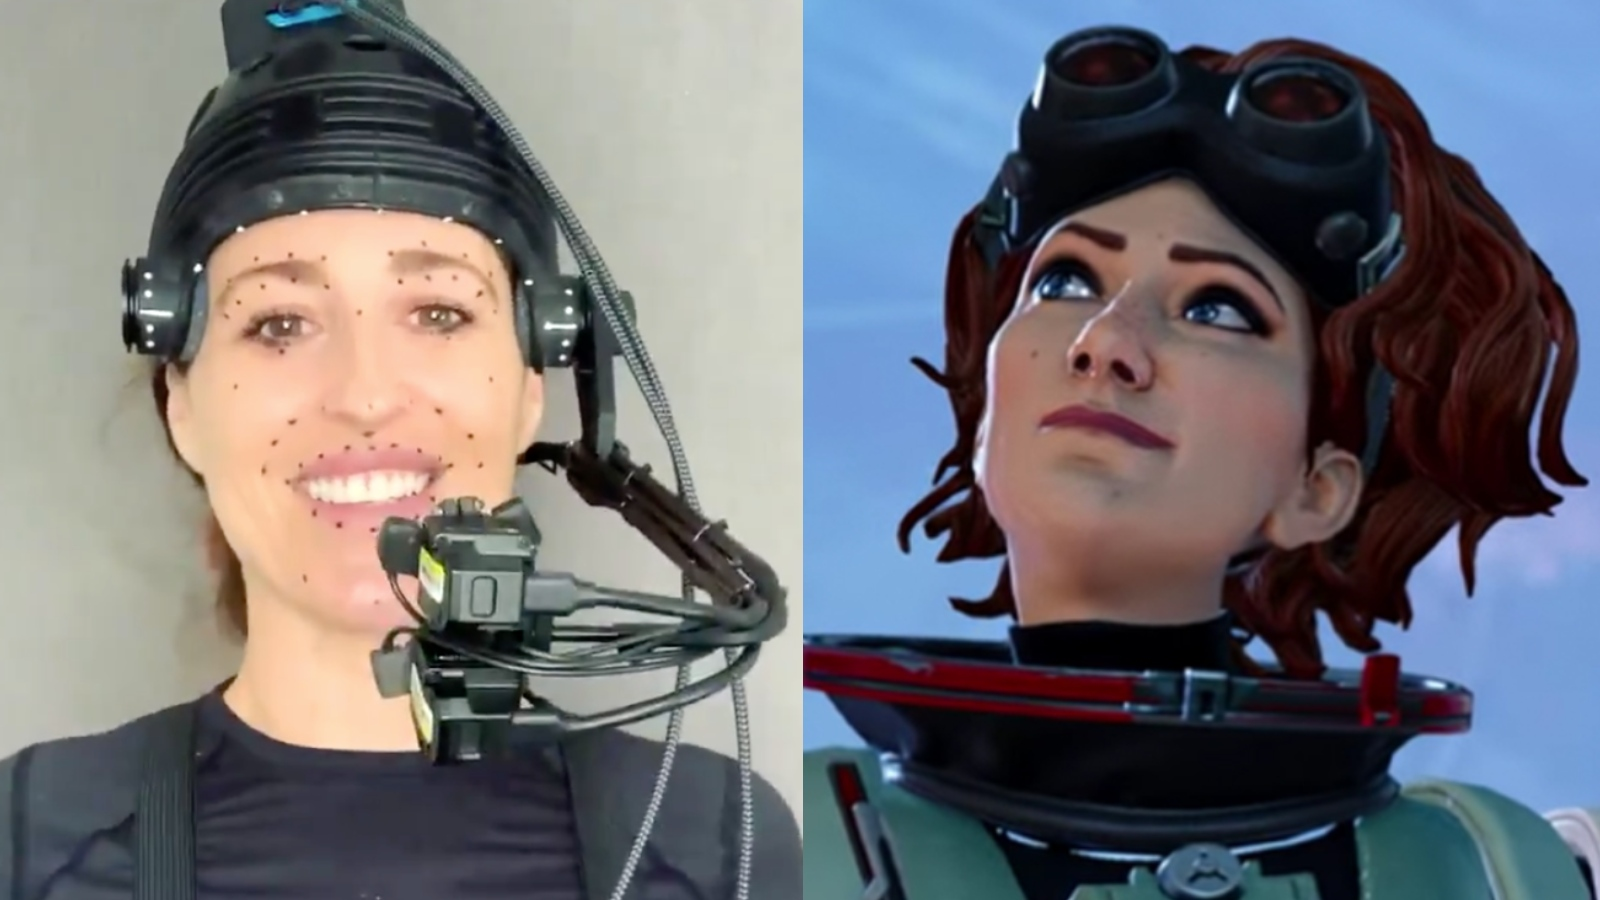 Horizon Apex Legends voice actor